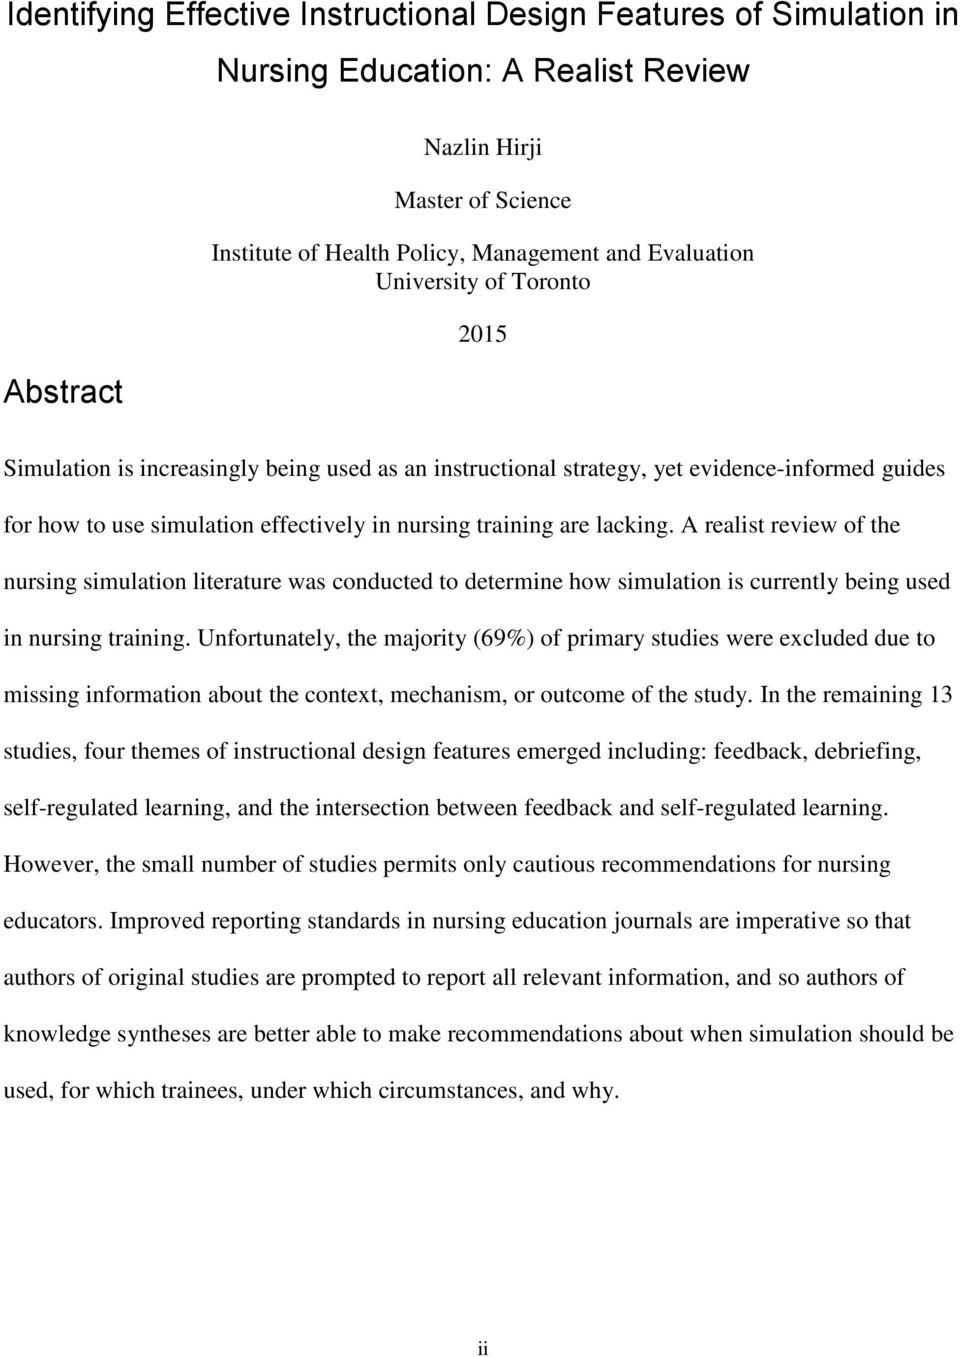 Identifying Effective Instructional Design Features Of Simulation In Nursing Education A Realist Review Pdf Free Download